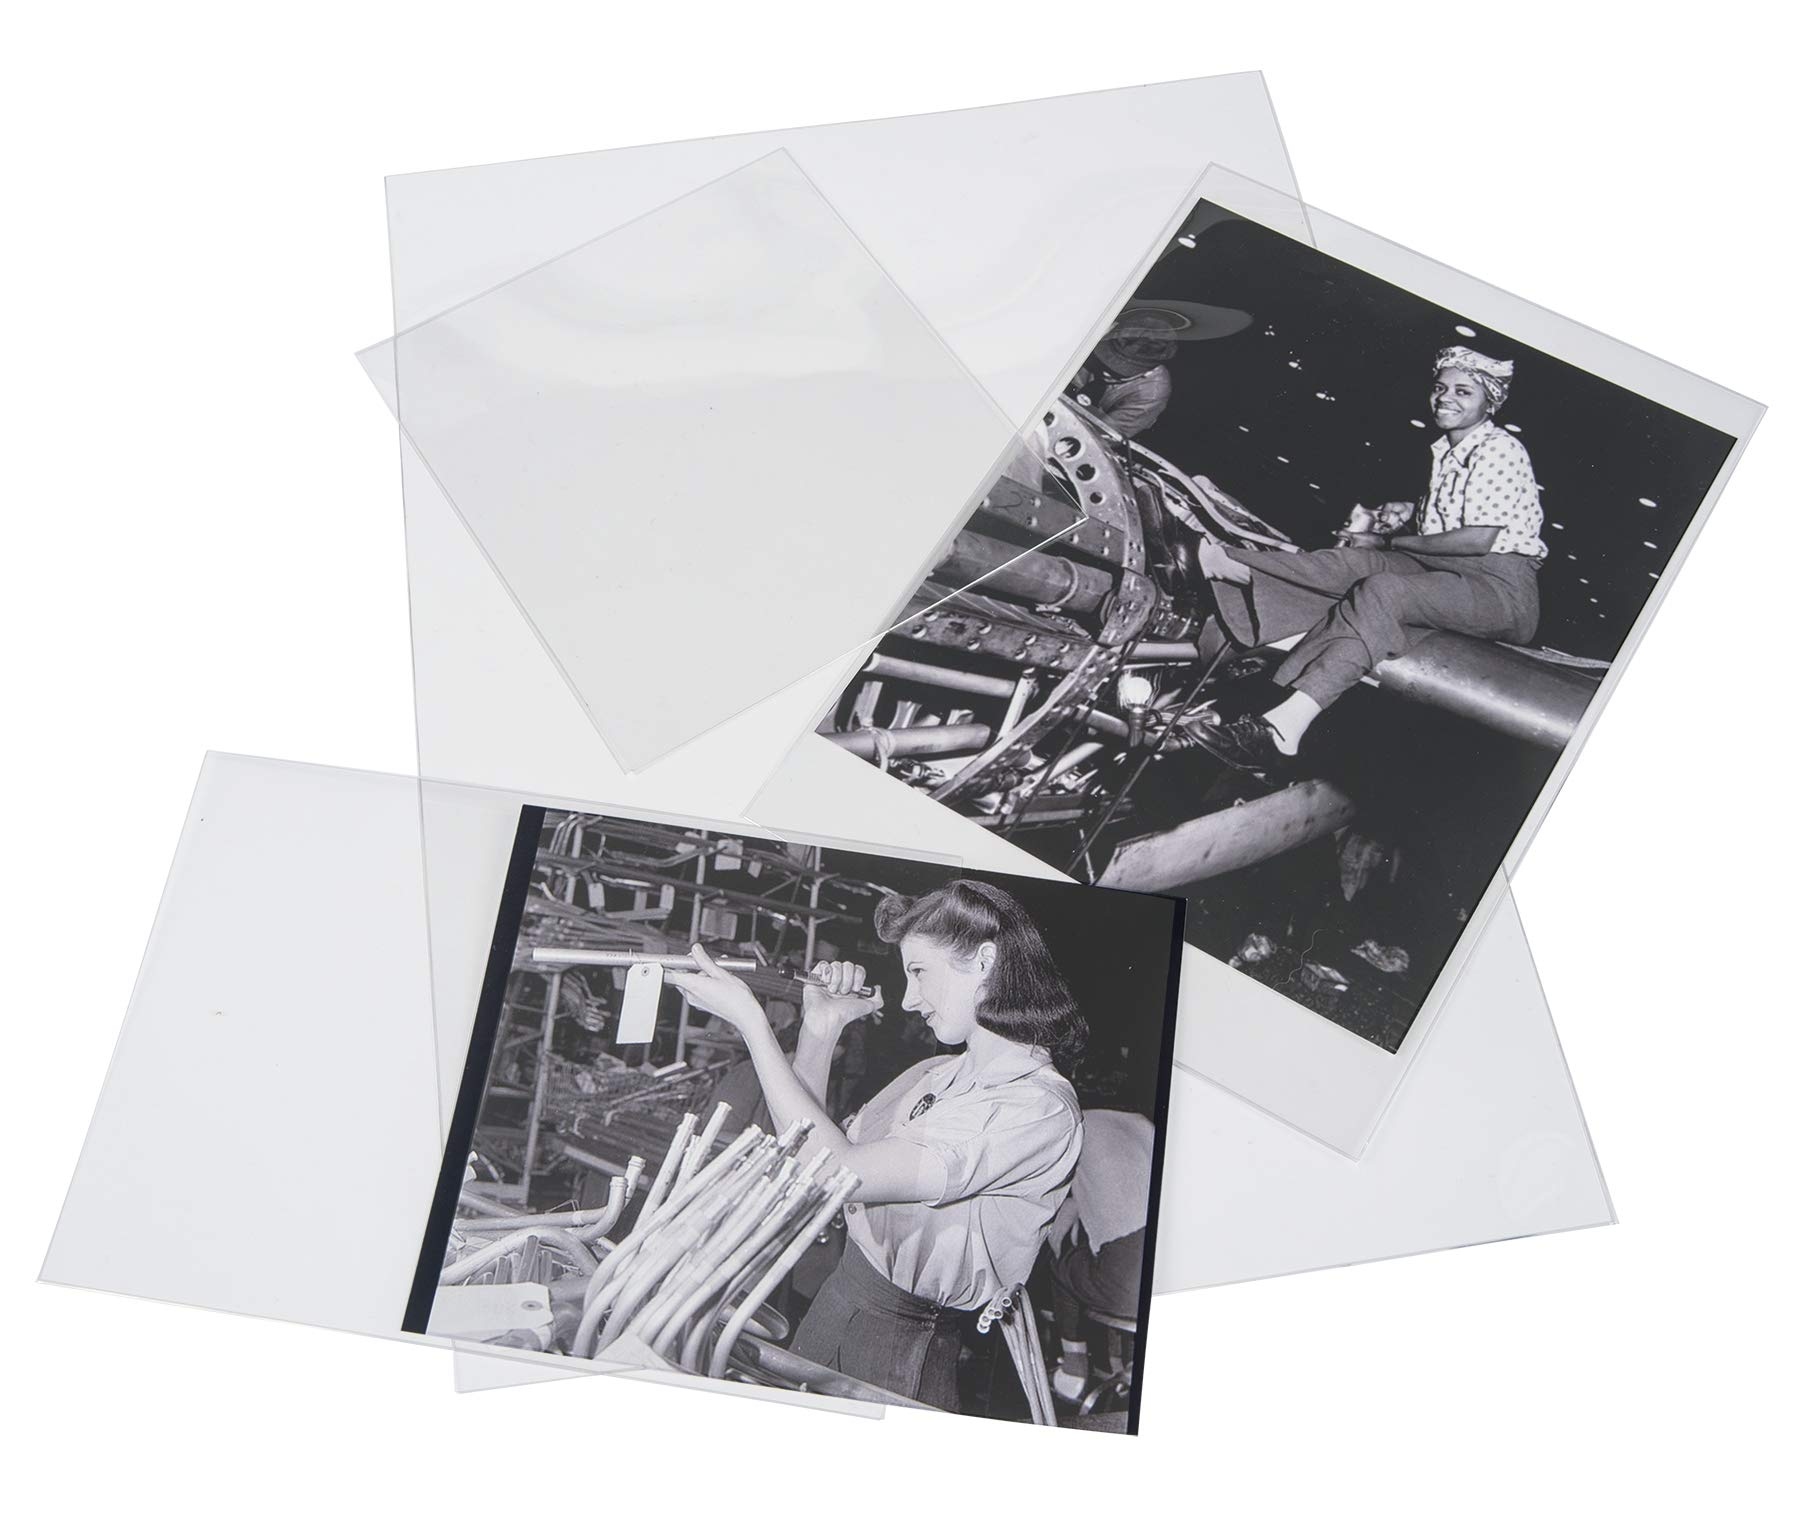 Gaylord Archival Archival Polyester Preservation Sleeves Variety Pack